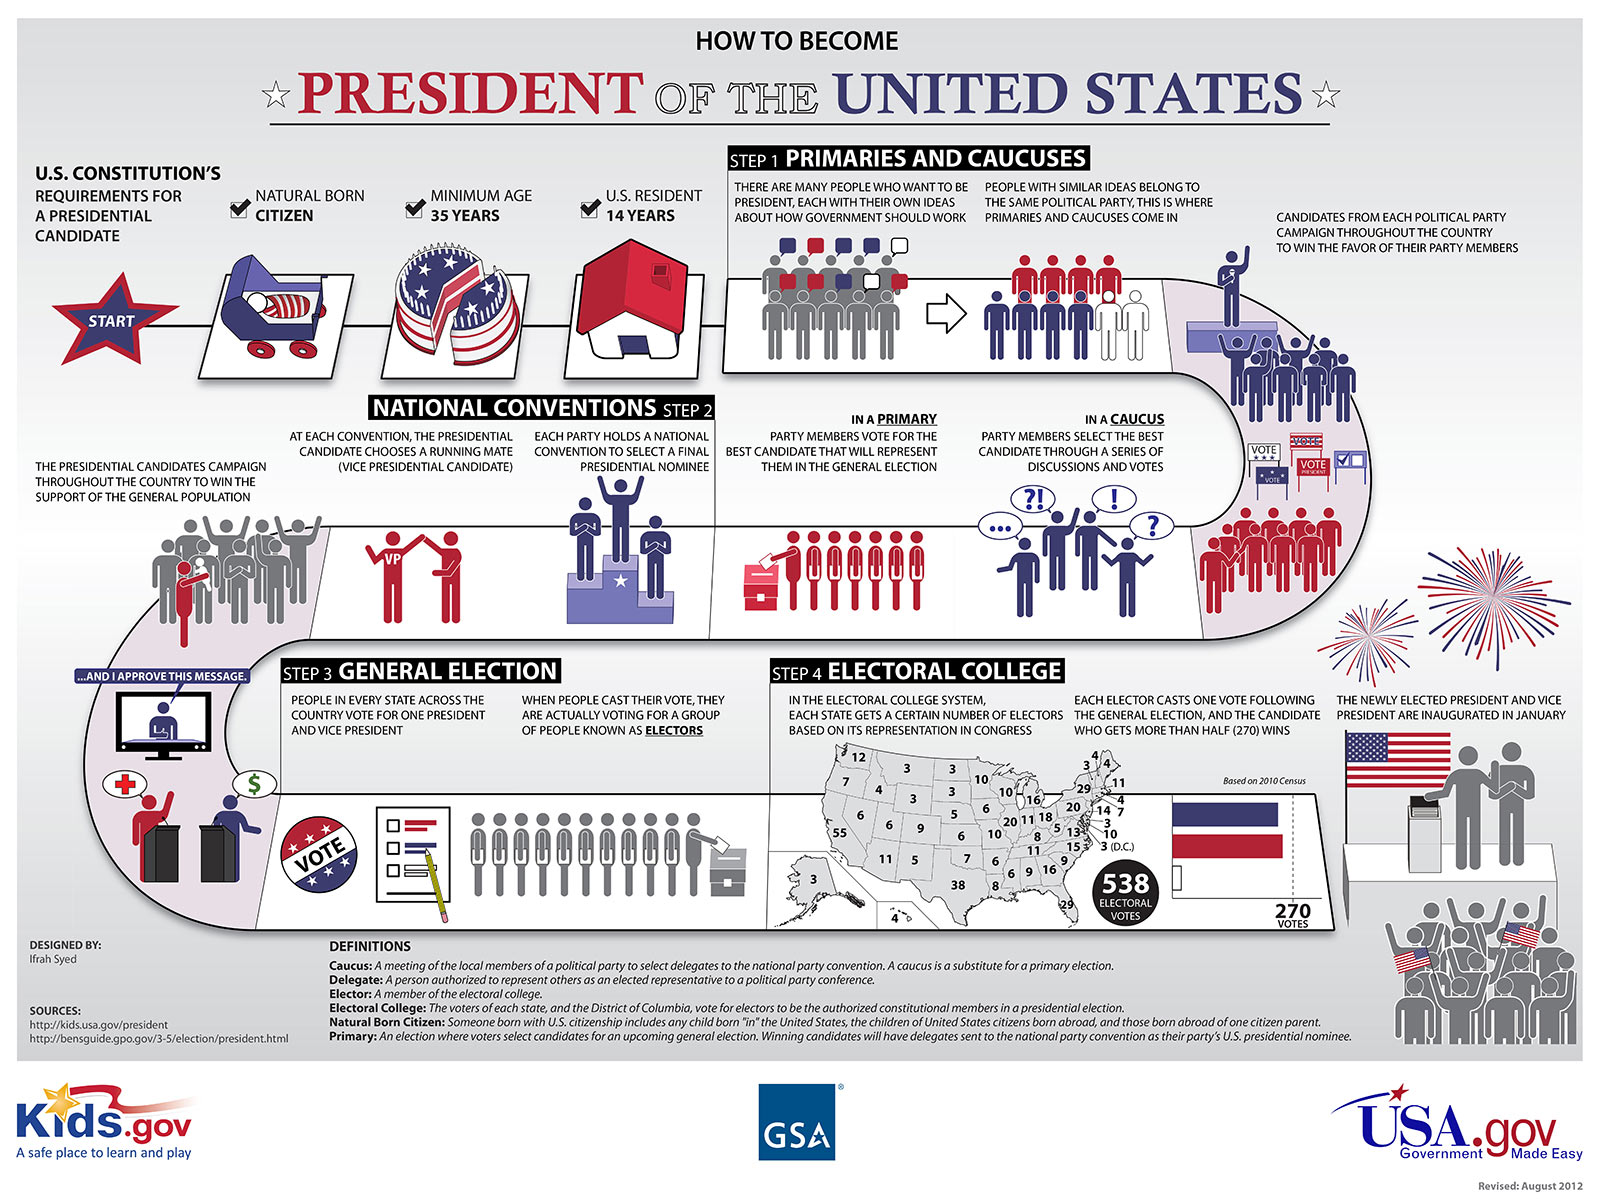 How to Become President of the United States Infographic